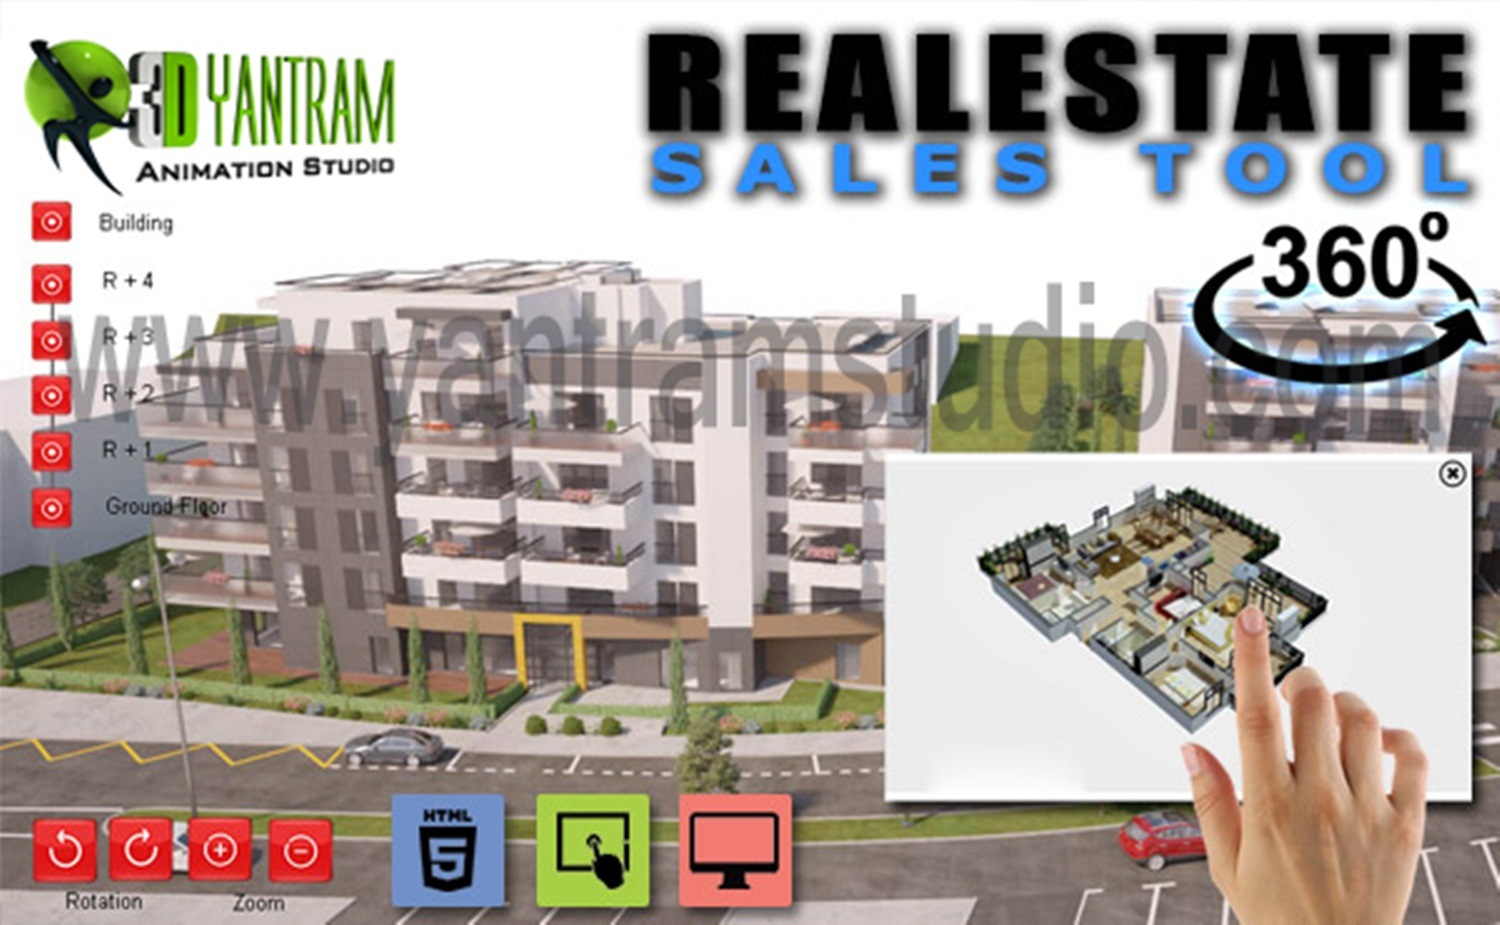 VR 360 Walkthrough By Yantram Virtual Reality Studio- Boston, USA - VR Realstate marketing-oriented website that is well designed with calls to action can literally catapult your real estate business to the next level. Ninety-two percent. by yantramstudio